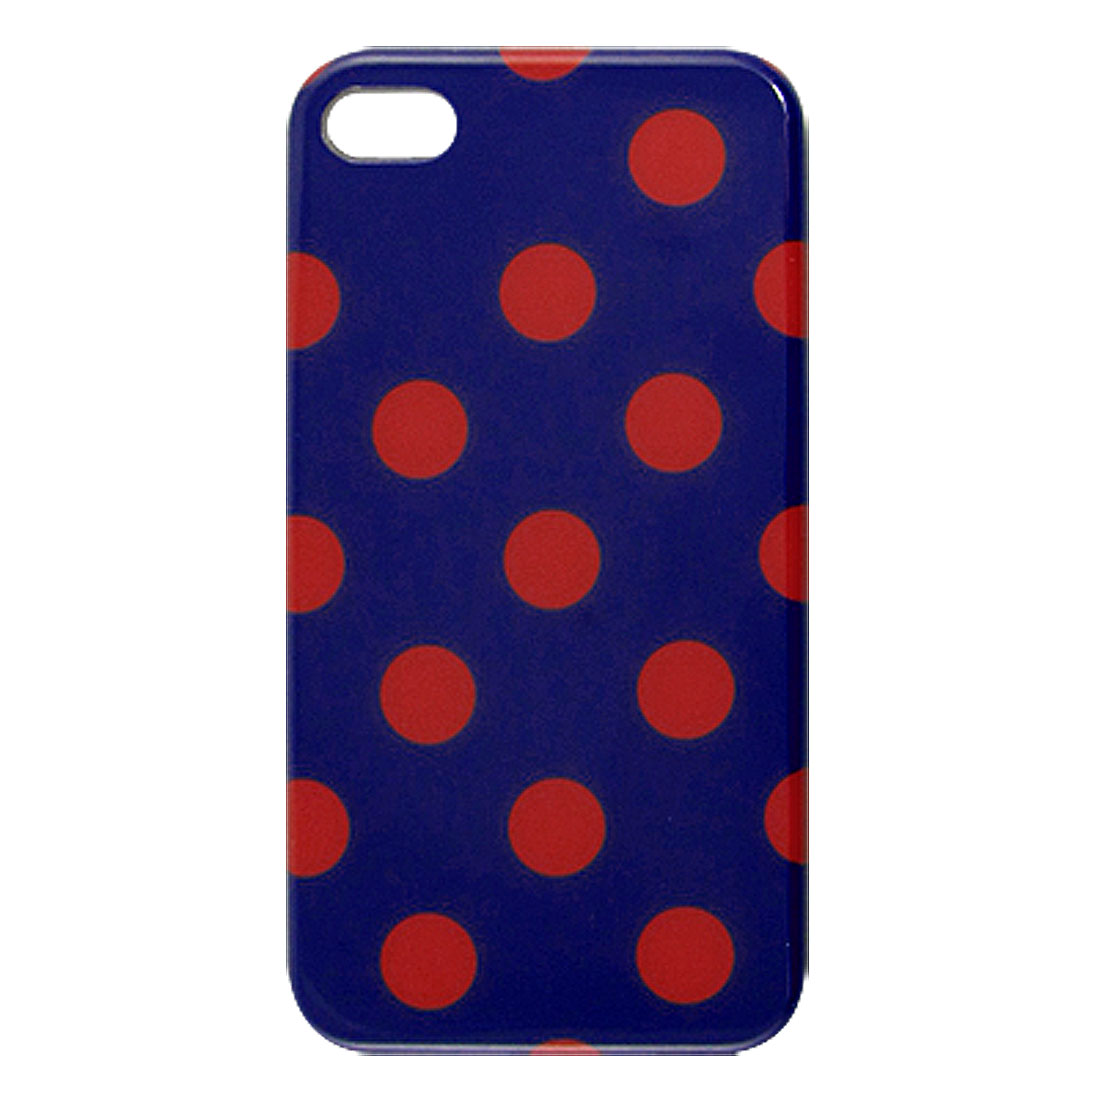 Red Round Circle Dark Blue Hard Plastic IMD Back Case for iPhone 4 4G 4S